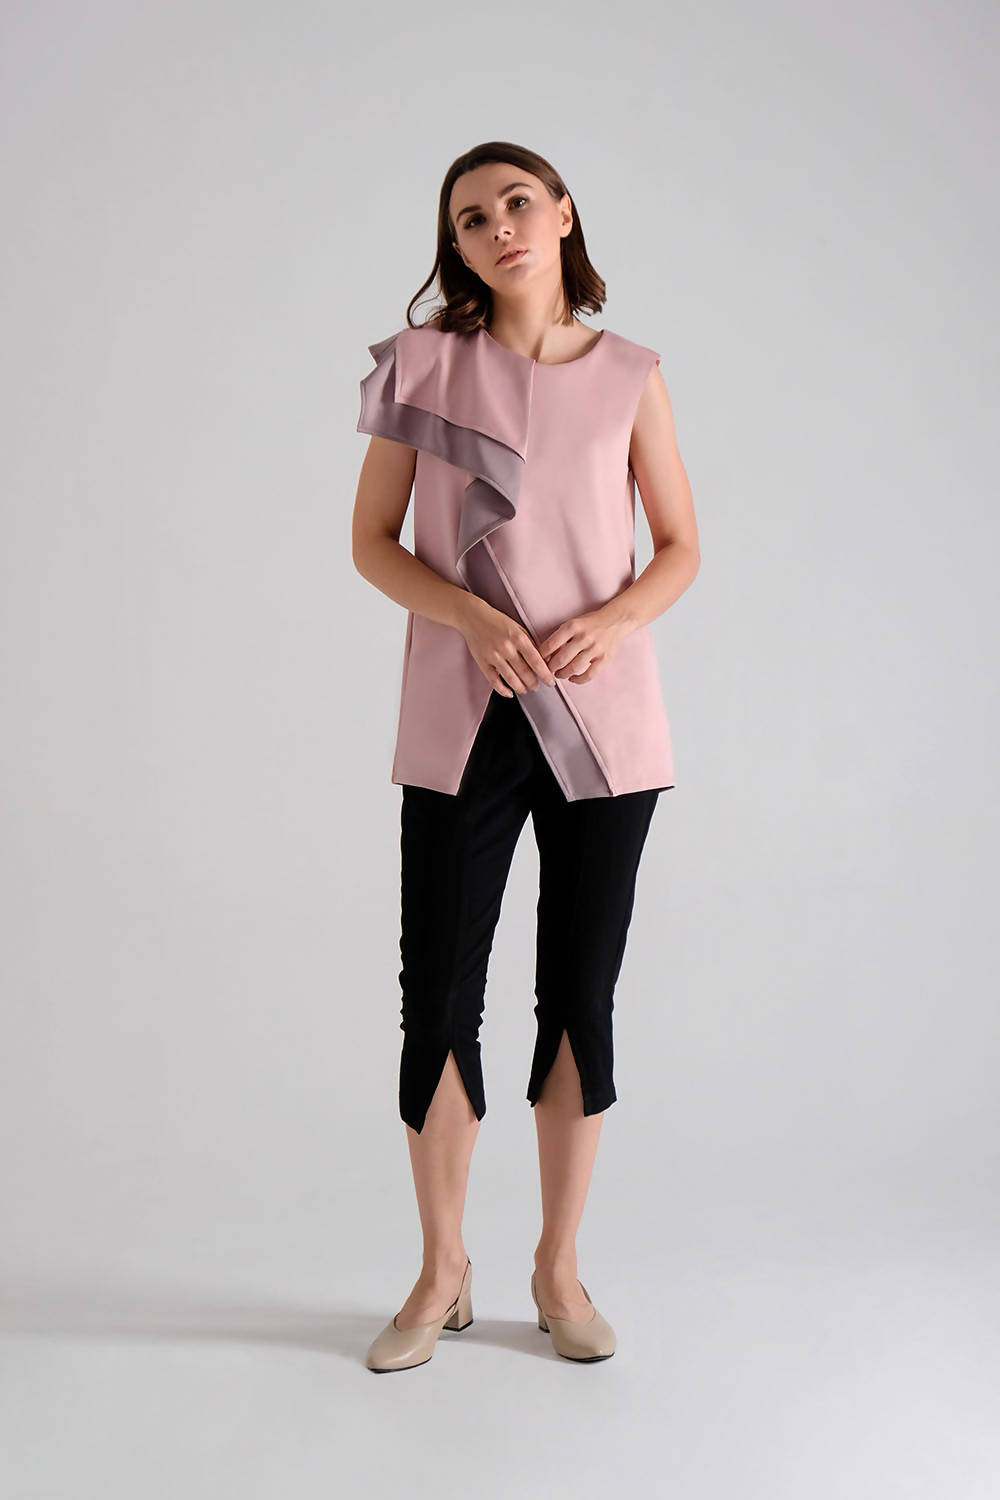 Leoni Ruffle Top in Pink